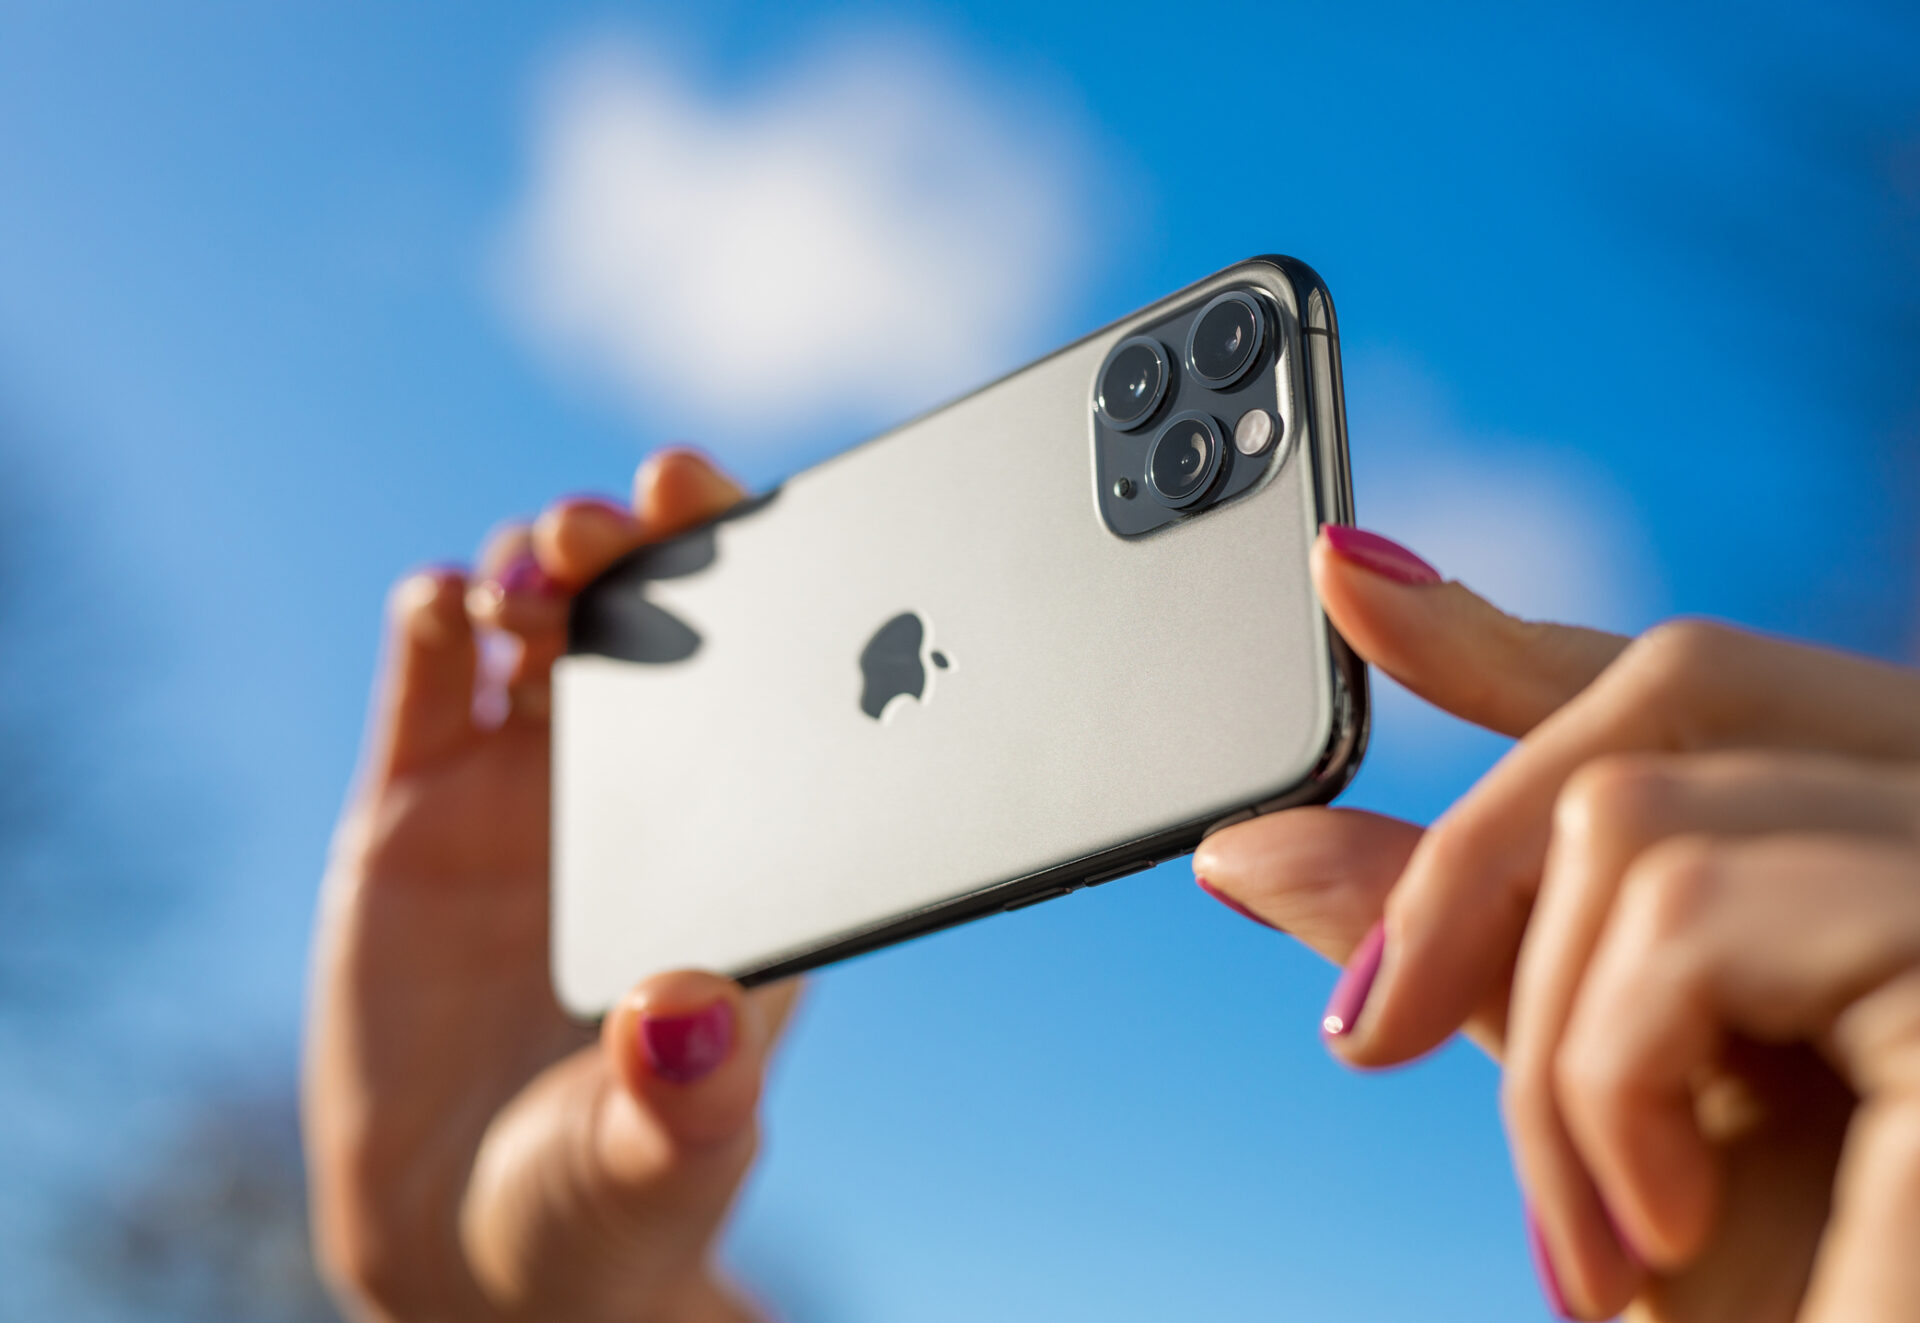 Apple iPhone 11 Pro mobile phone with triple-lens camera